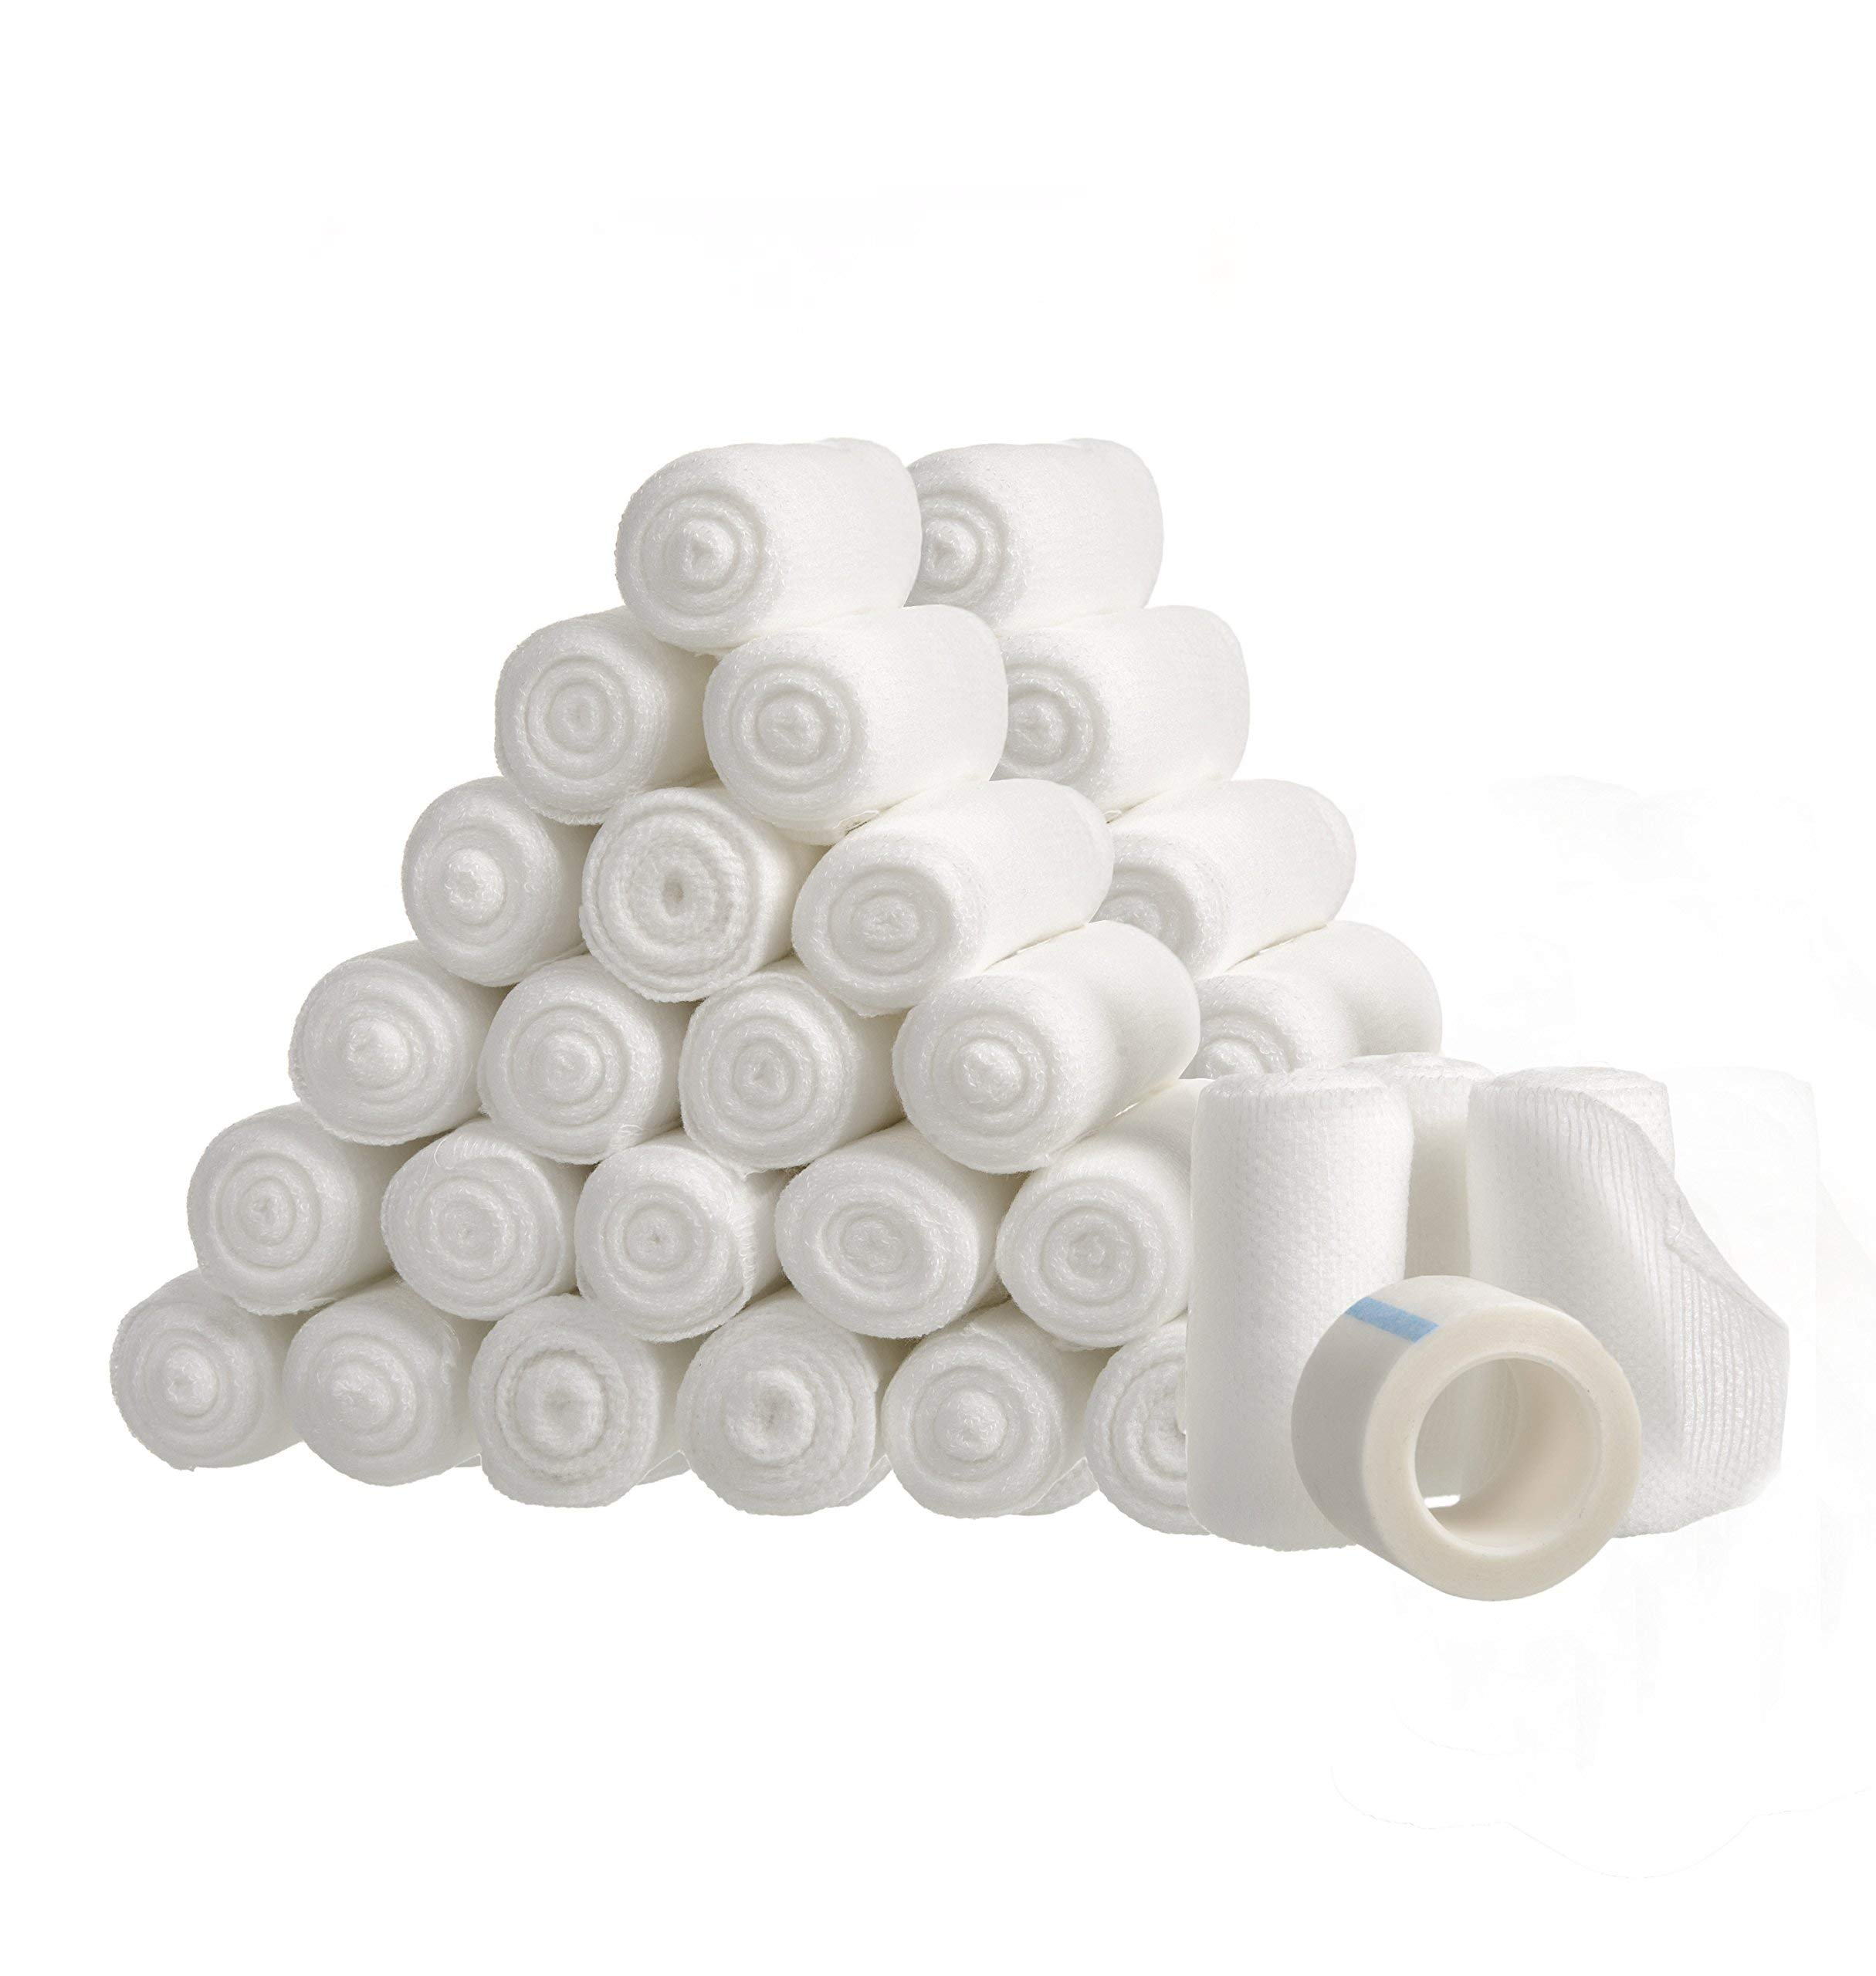 48 Gauze Bandage Rolls with Medical Tape, 2'' x 4 Yards Stretched, Stretch Bandage Roll, FDA Approved, Medical Grade Sterile First Aid Wound Care, Dressing, by California Basics